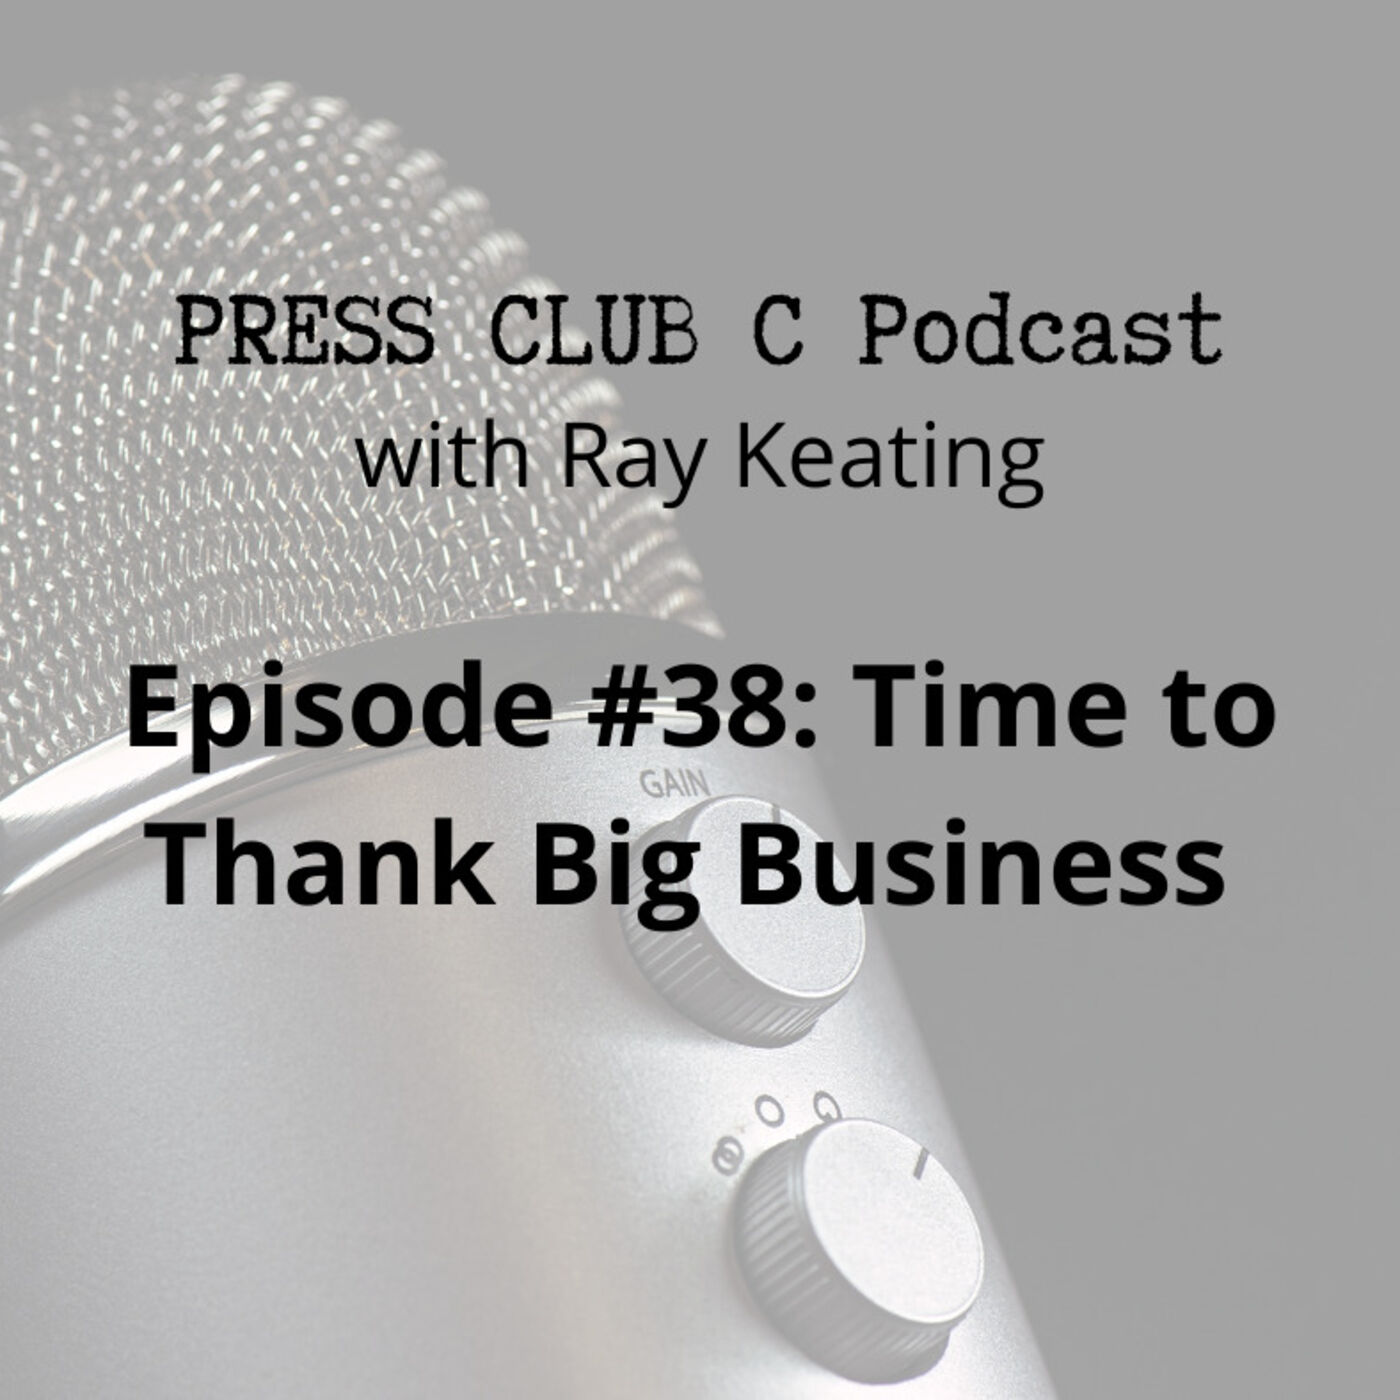 Episode #38: Time to Thank Big Business